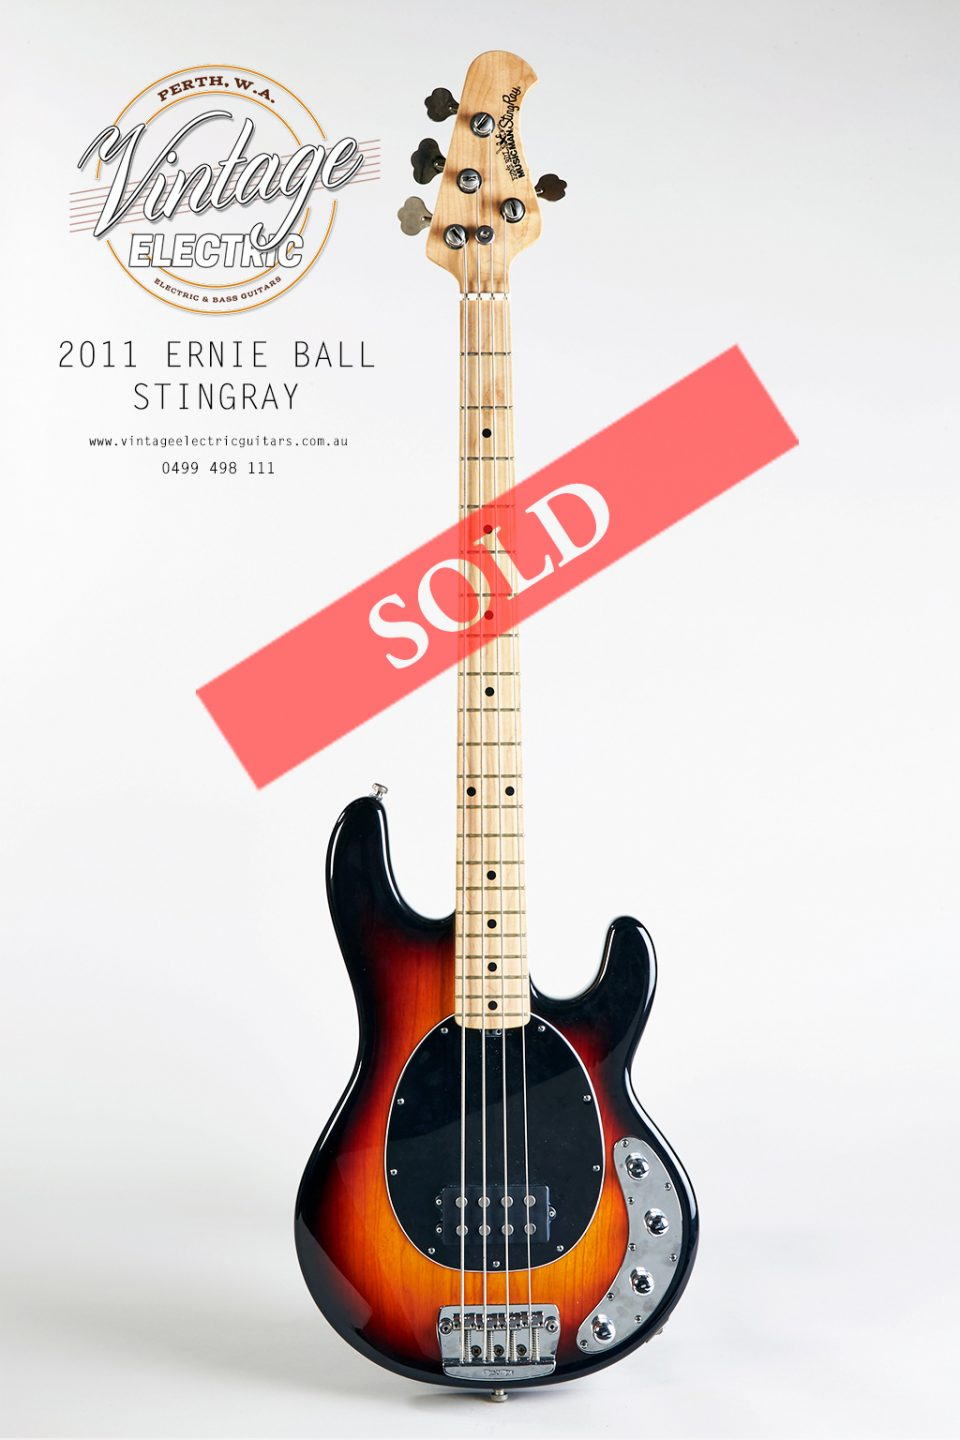 2011 ernie ball musicman stingray bass vintage electric guitars. Black Bedroom Furniture Sets. Home Design Ideas